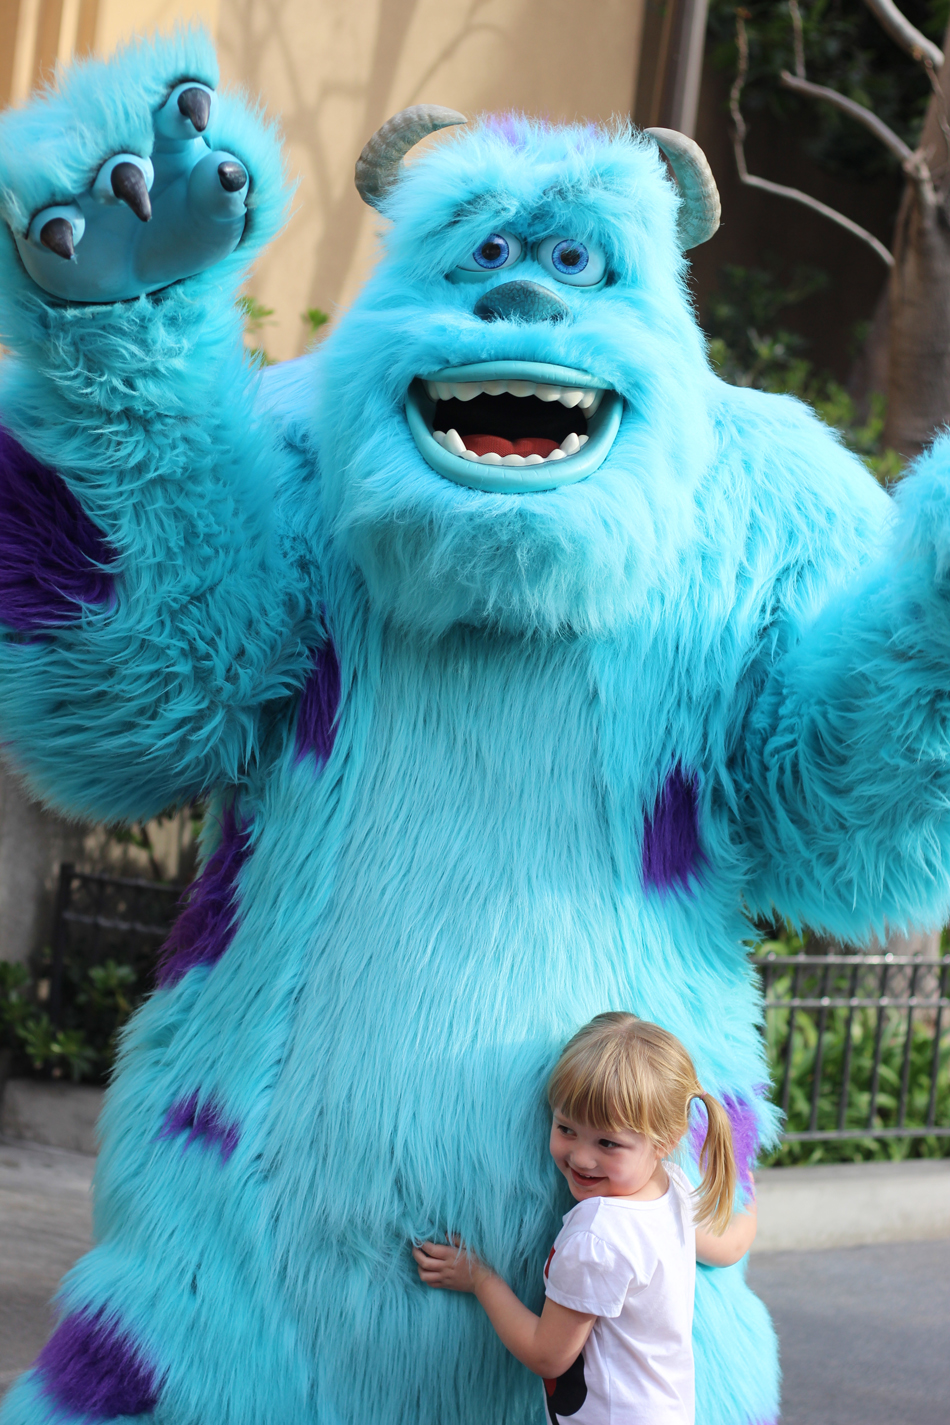 Forget the princesses, my girl loved Sully.